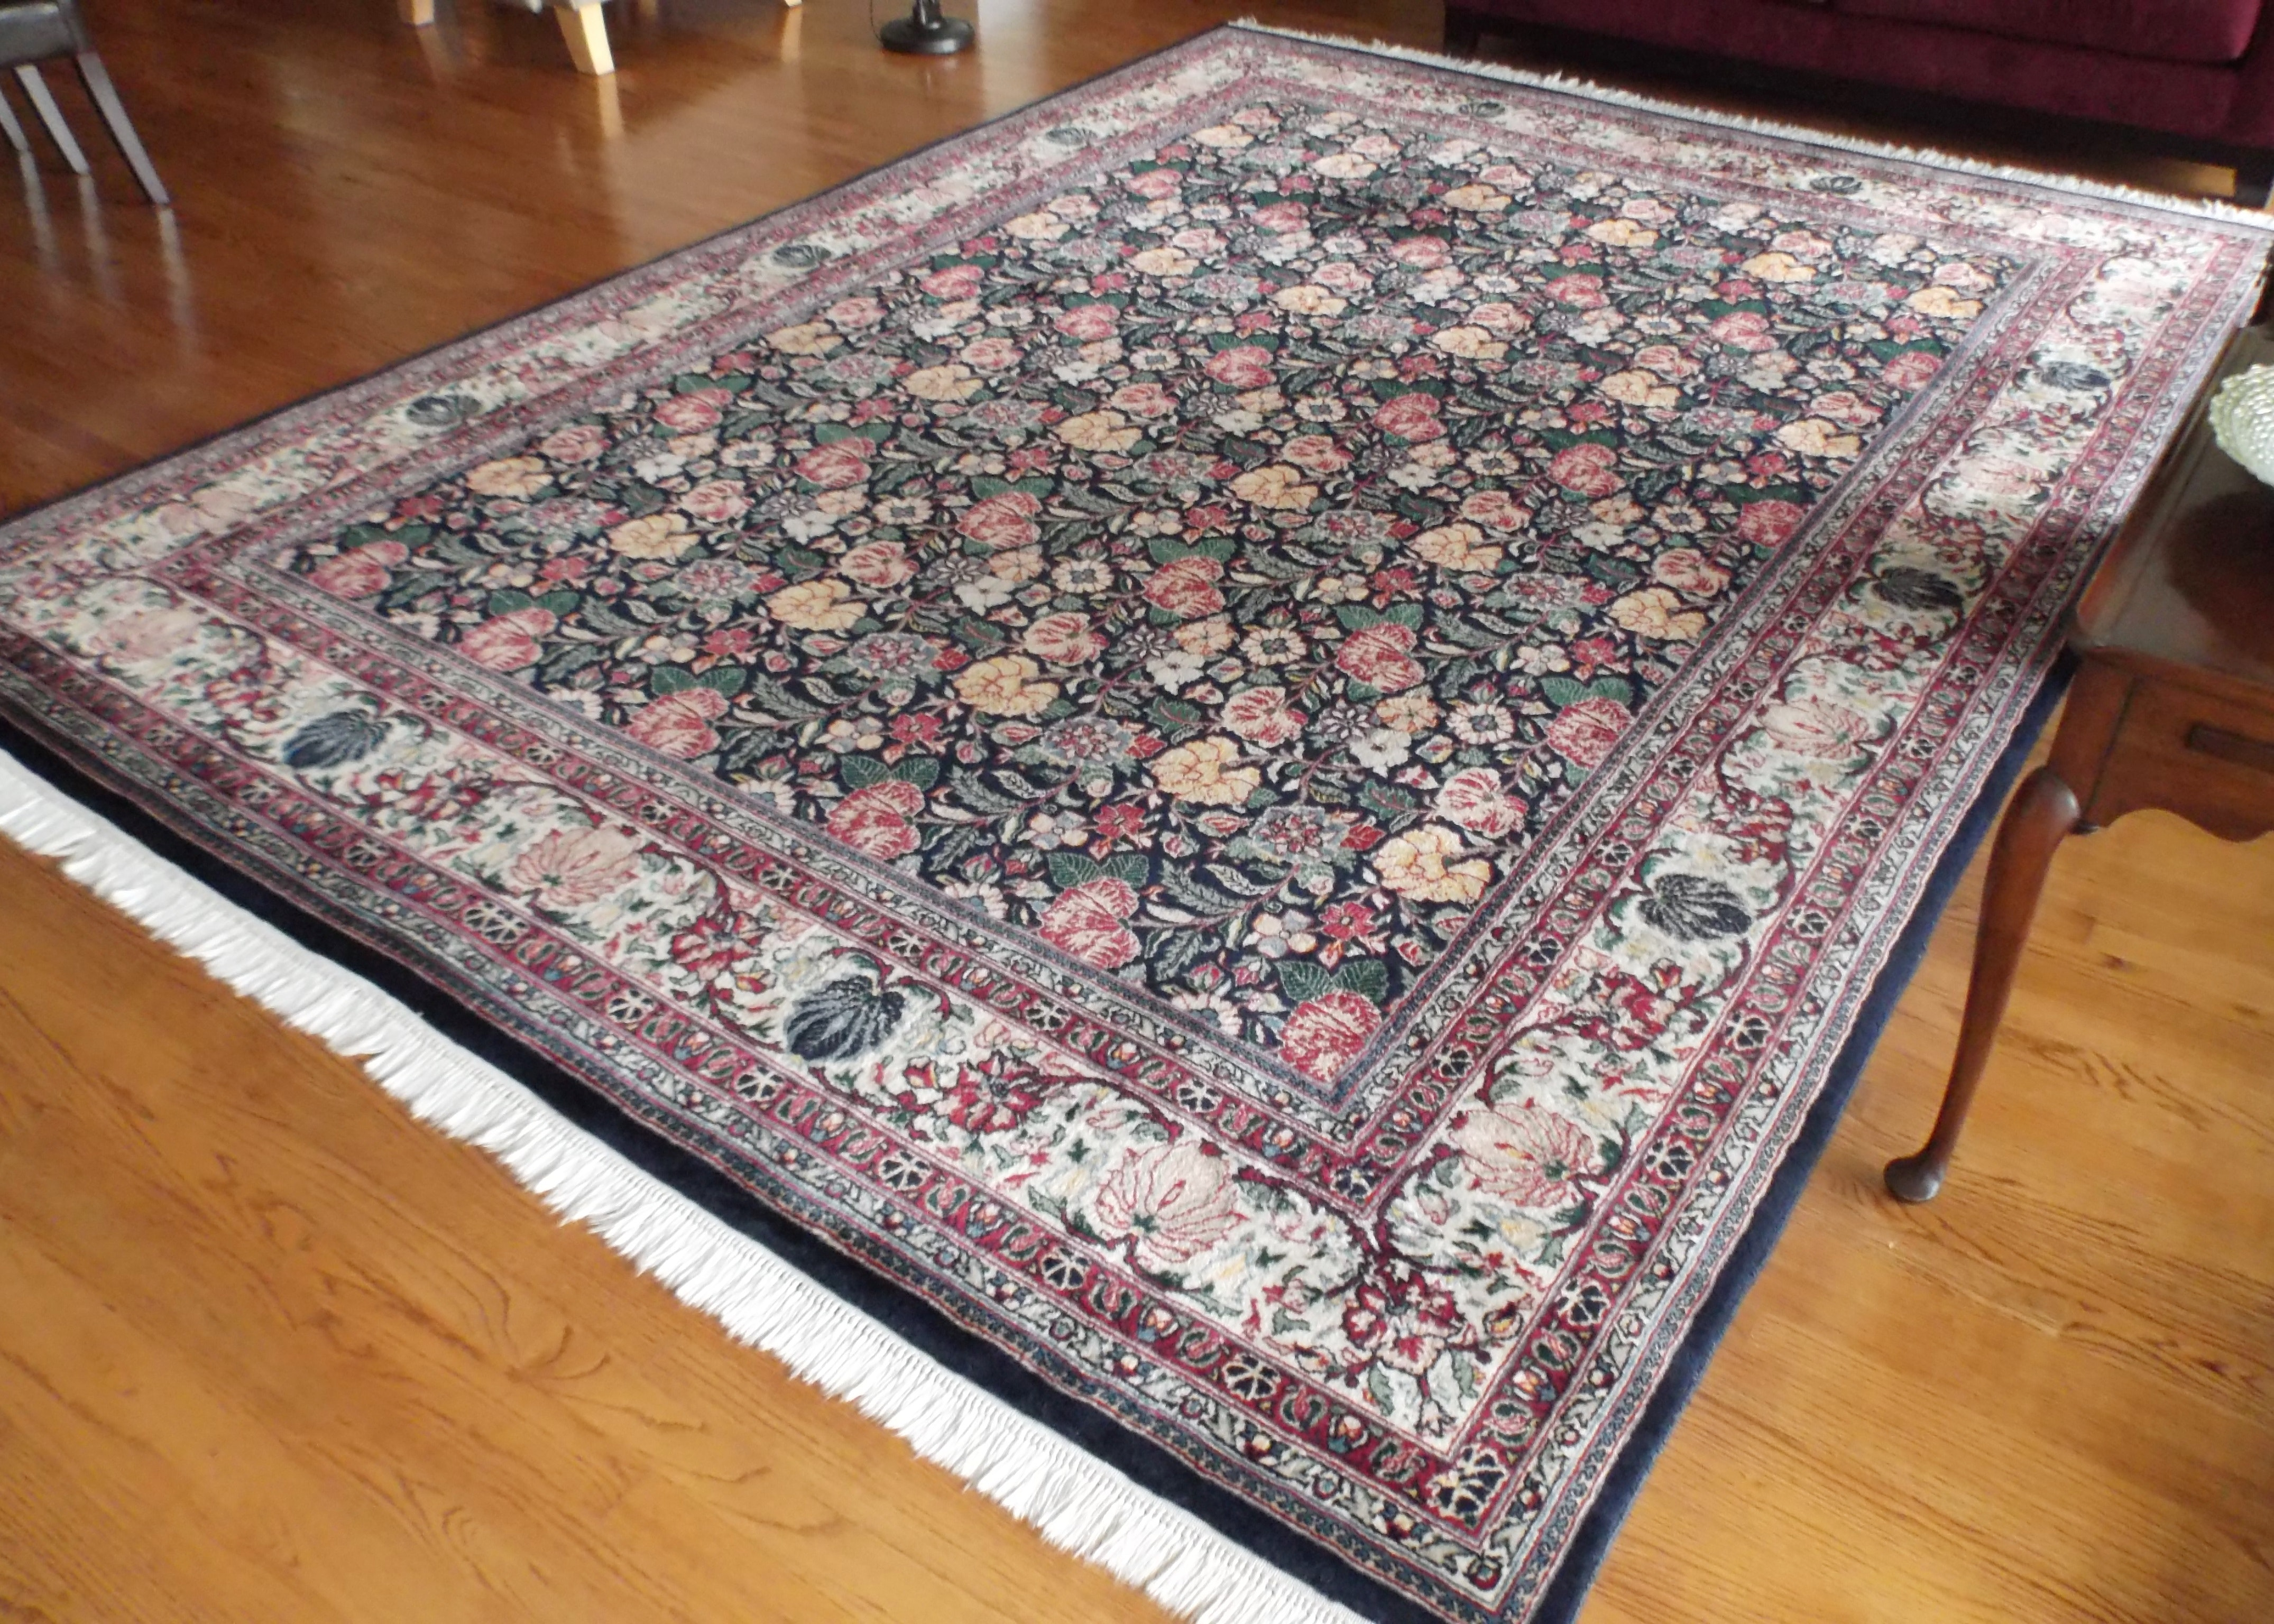 9X12 Hand Knotted Persian Design Bakhtiari Rug